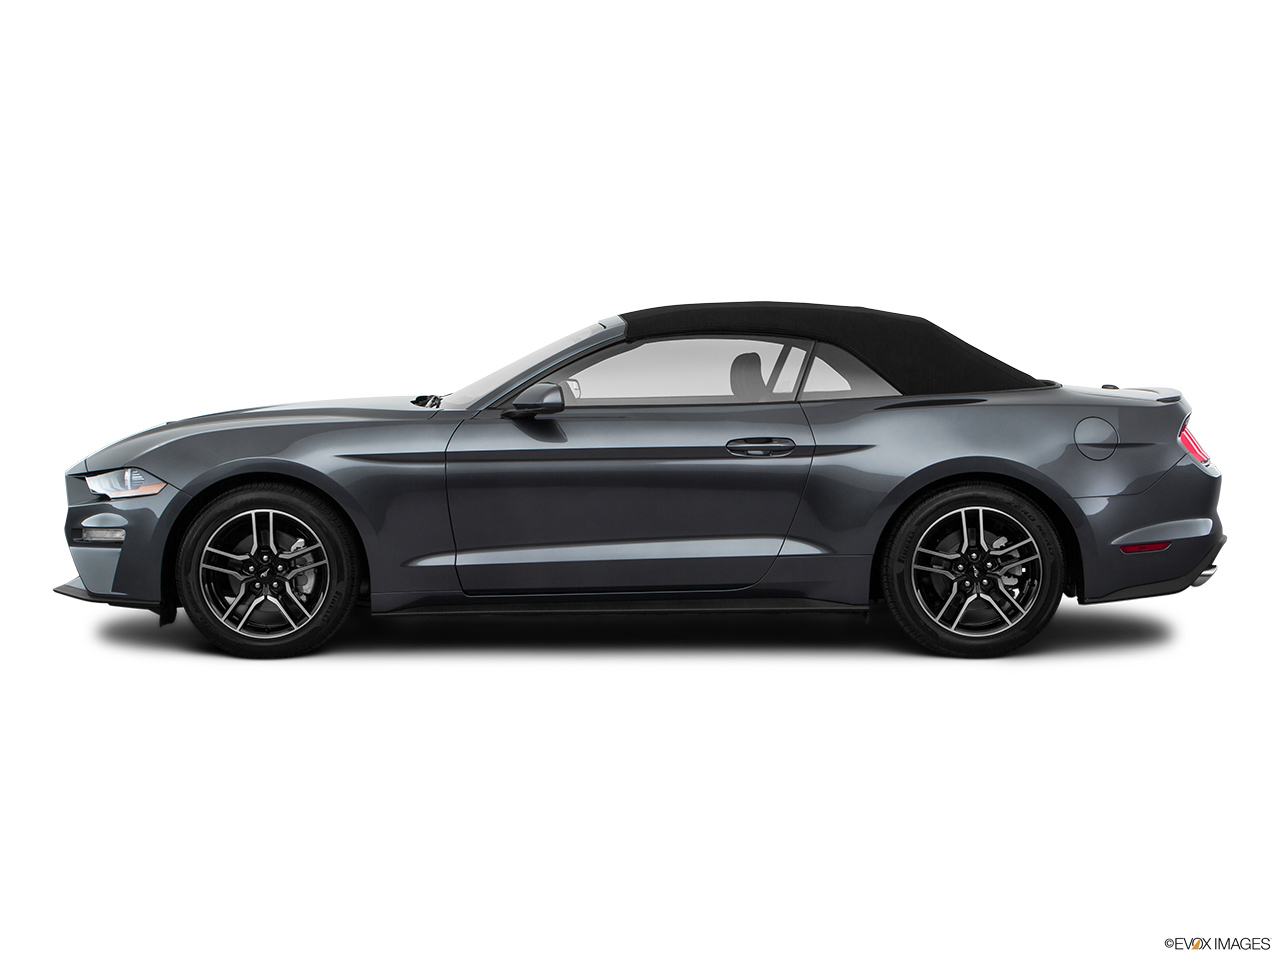 Ford Mustang 2018 5.0L Fastback California Special in UAE: New Car Prices, Specs, Reviews ...